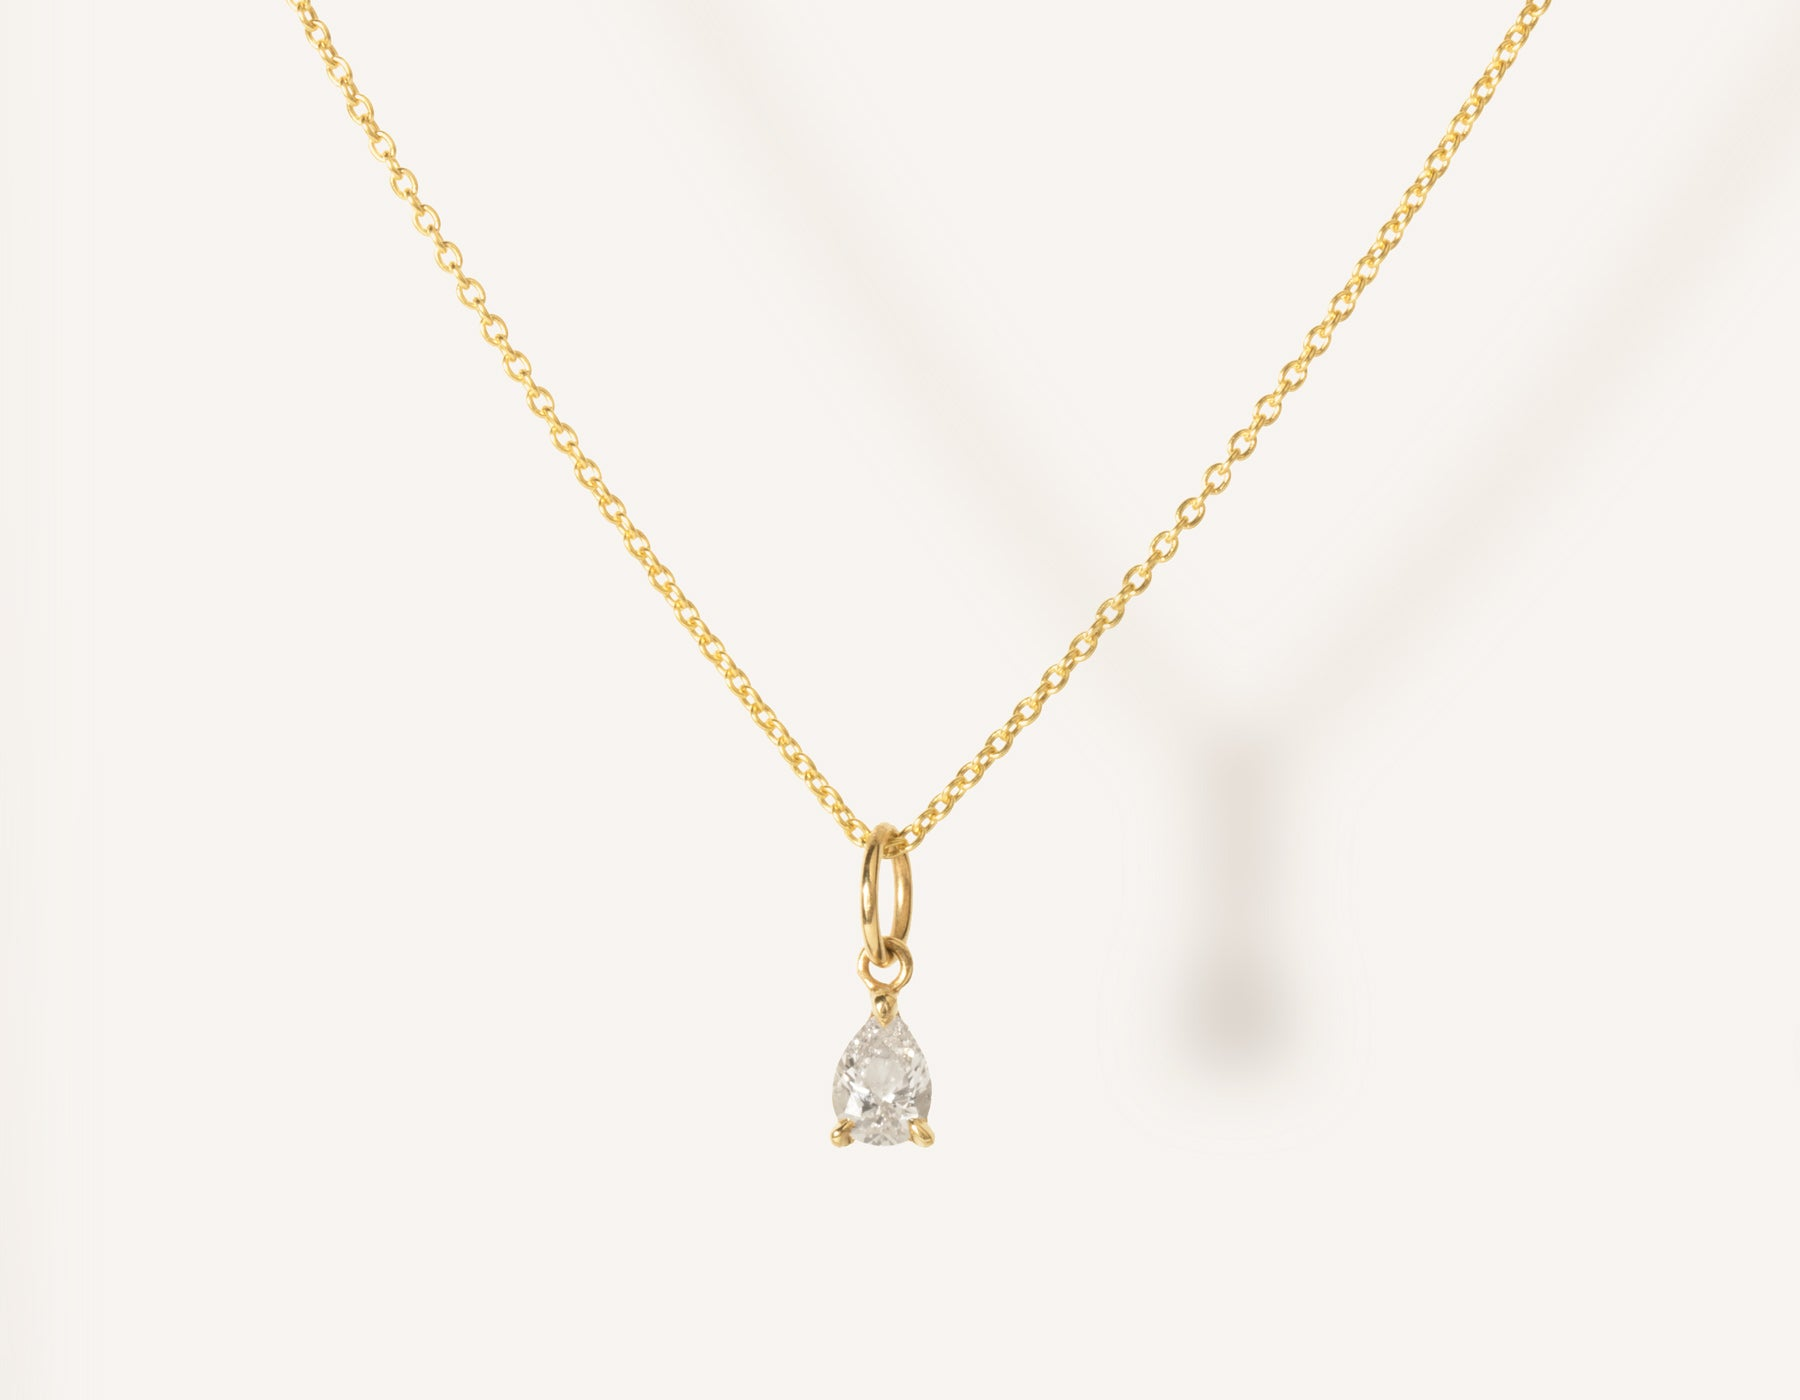 d7aec319e vrai & oro 14k solid gold dainty Pear Diamond Pendant Necklace on  minimalist oval link chain